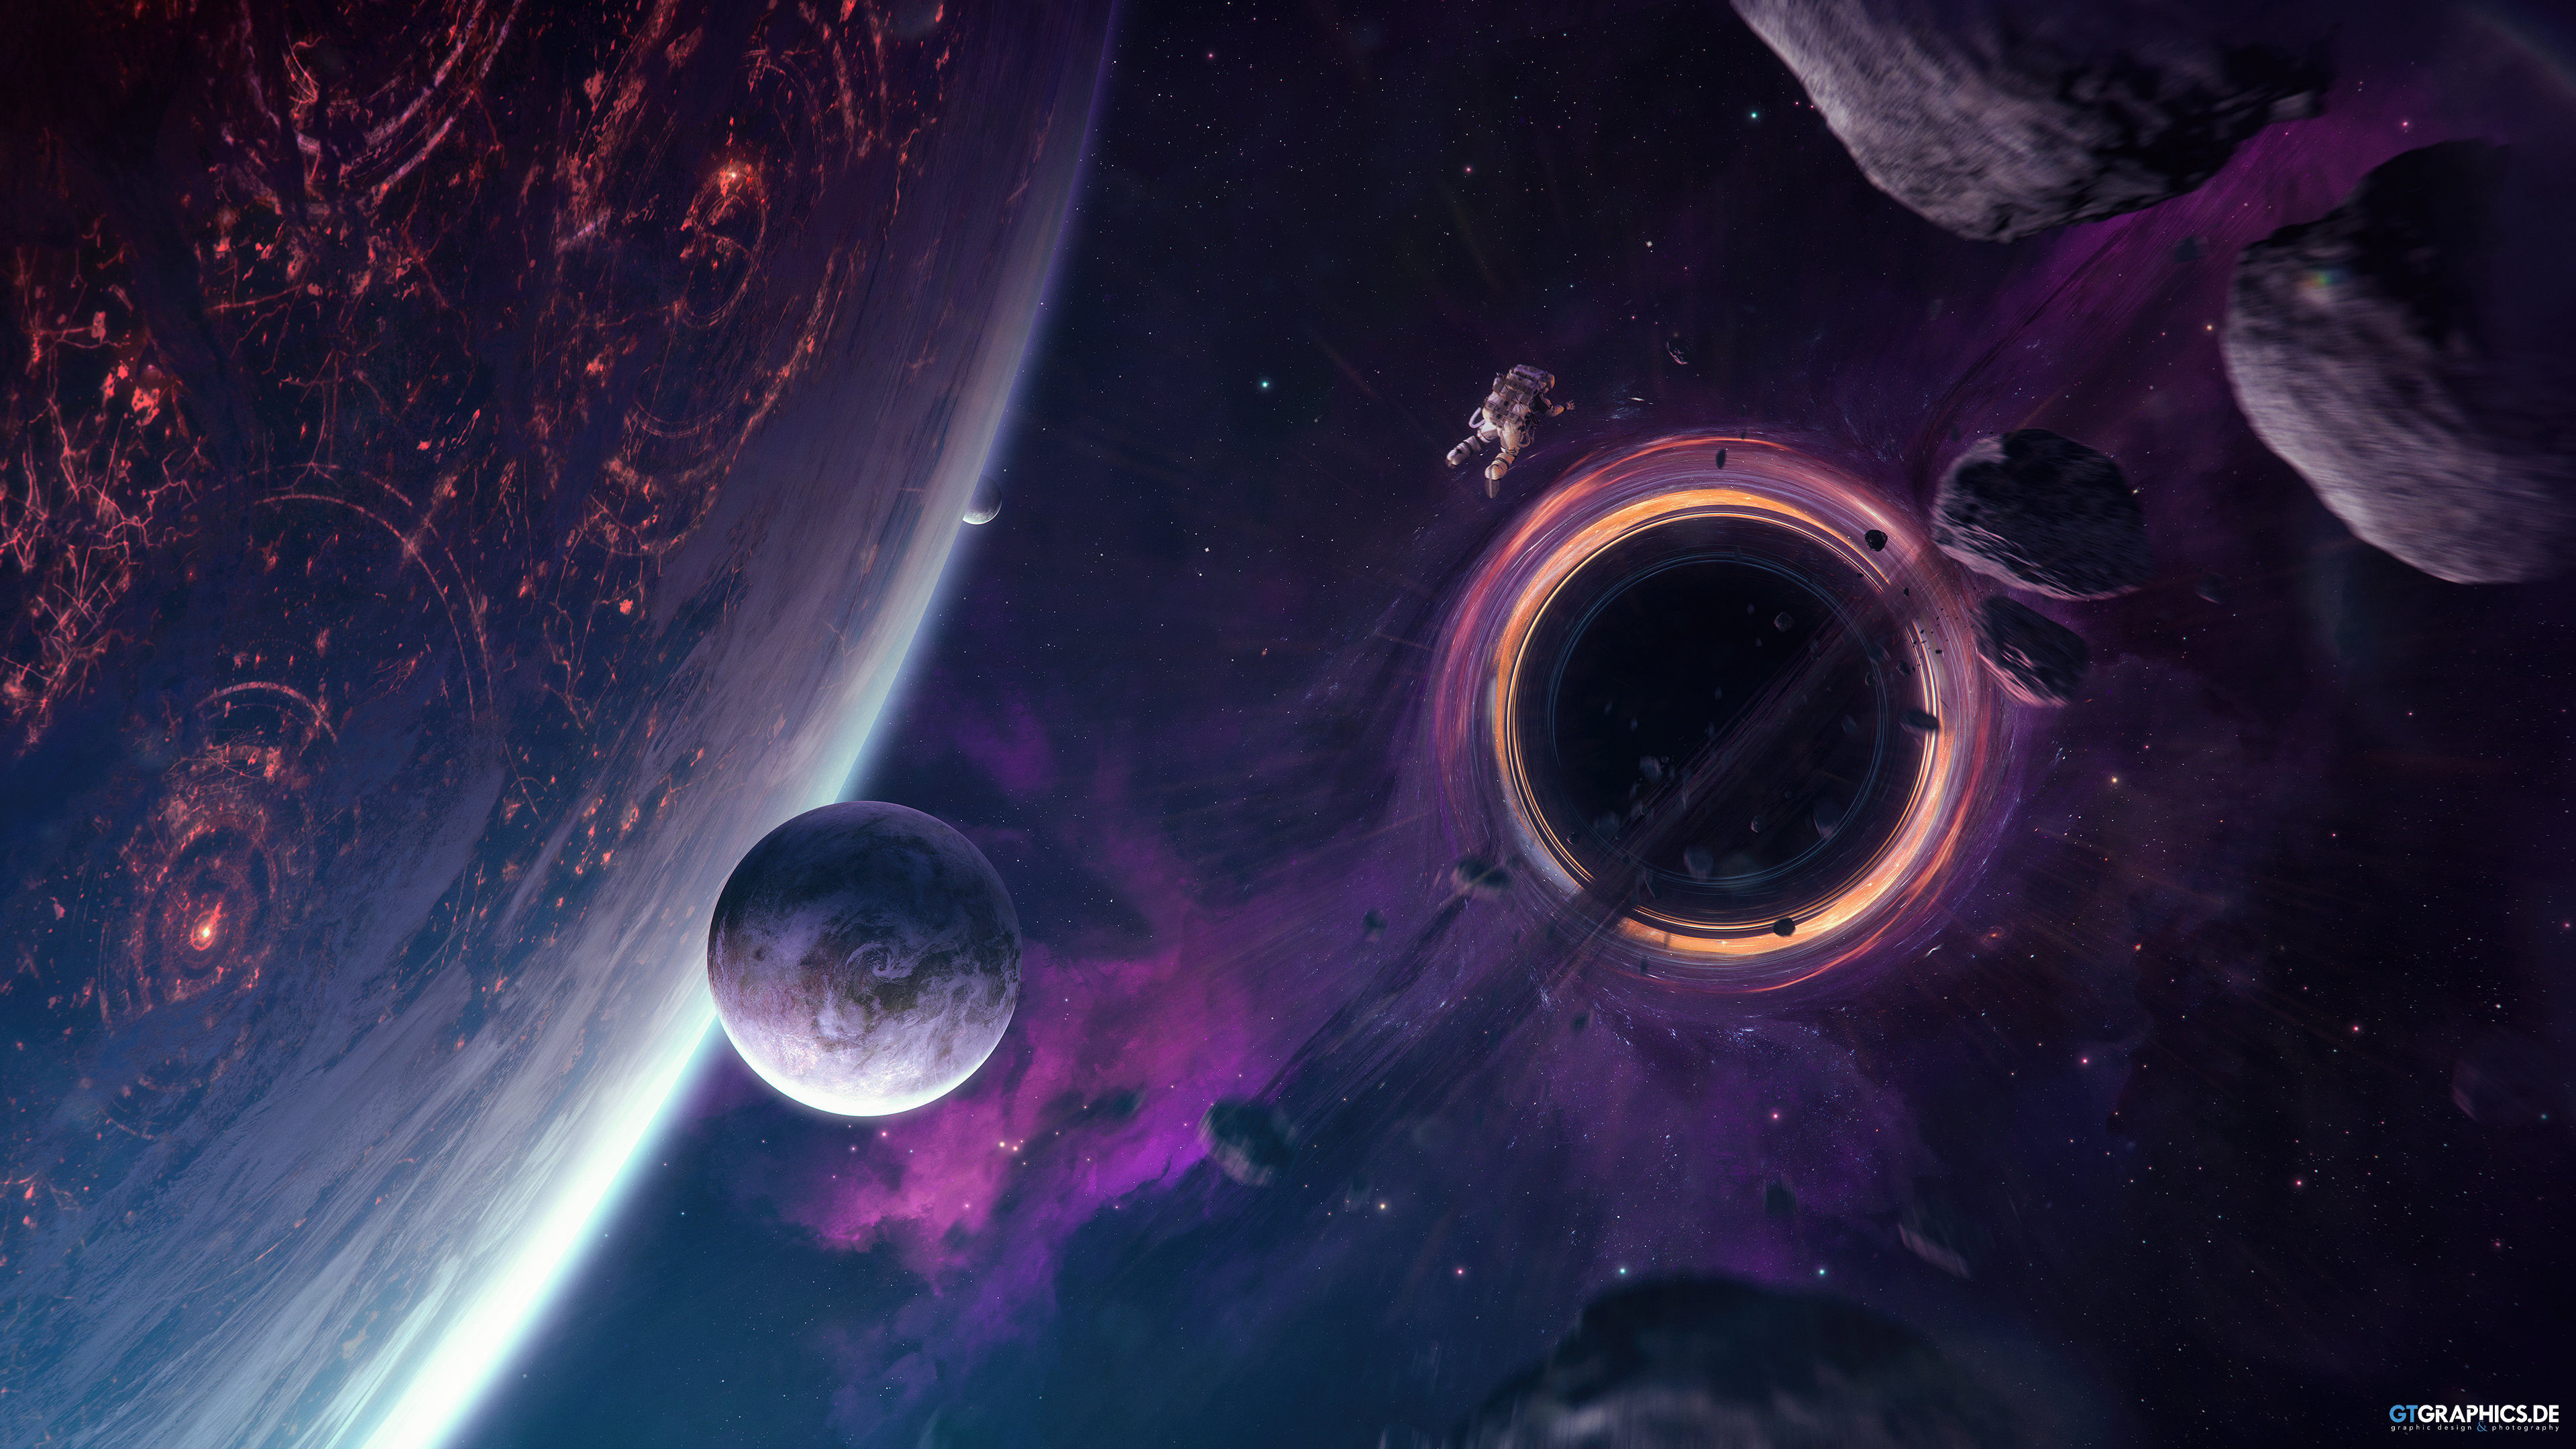 General 3840x2160 space science fiction artwork space art astronaut